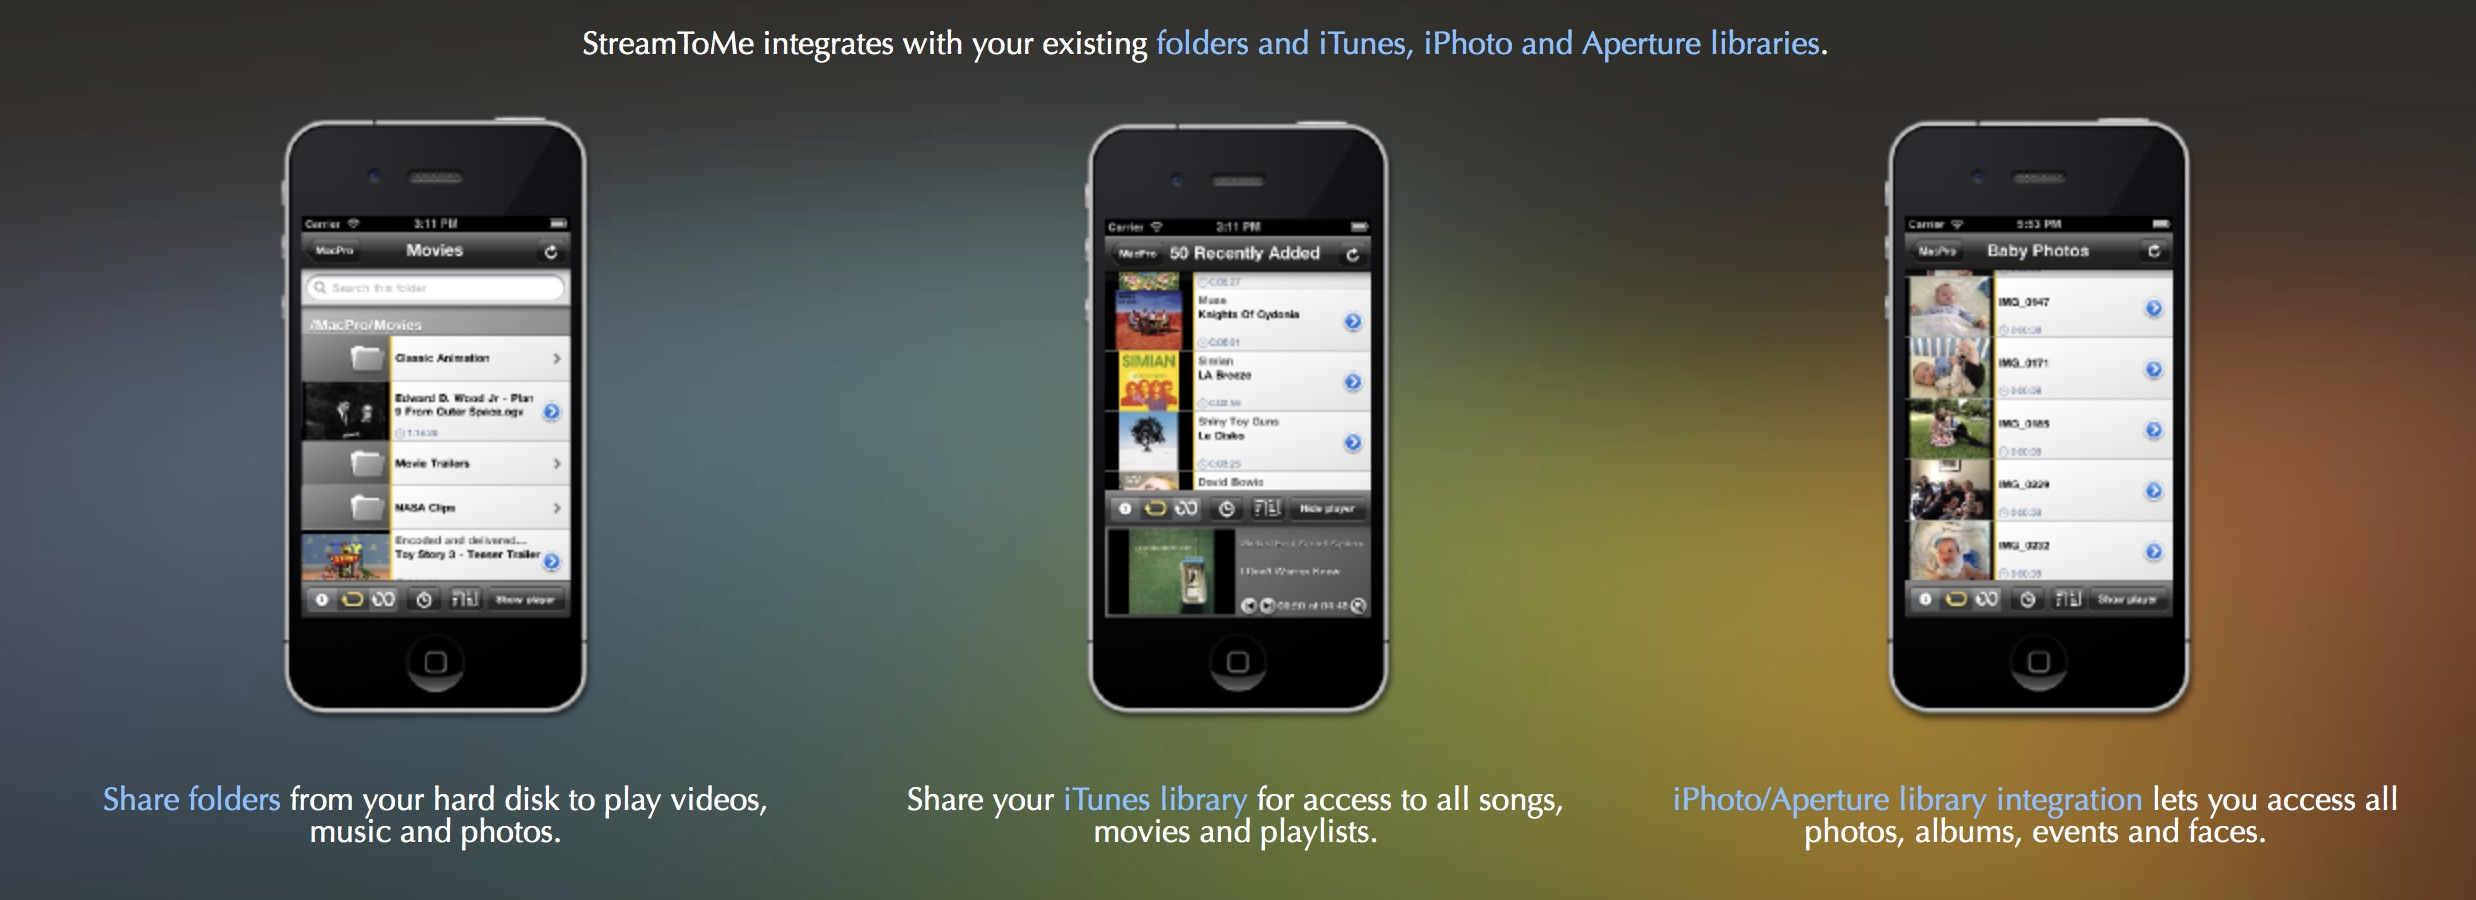 Some StreamToMe promotional screenshots from the iOS 6 era. 'member Aperture?